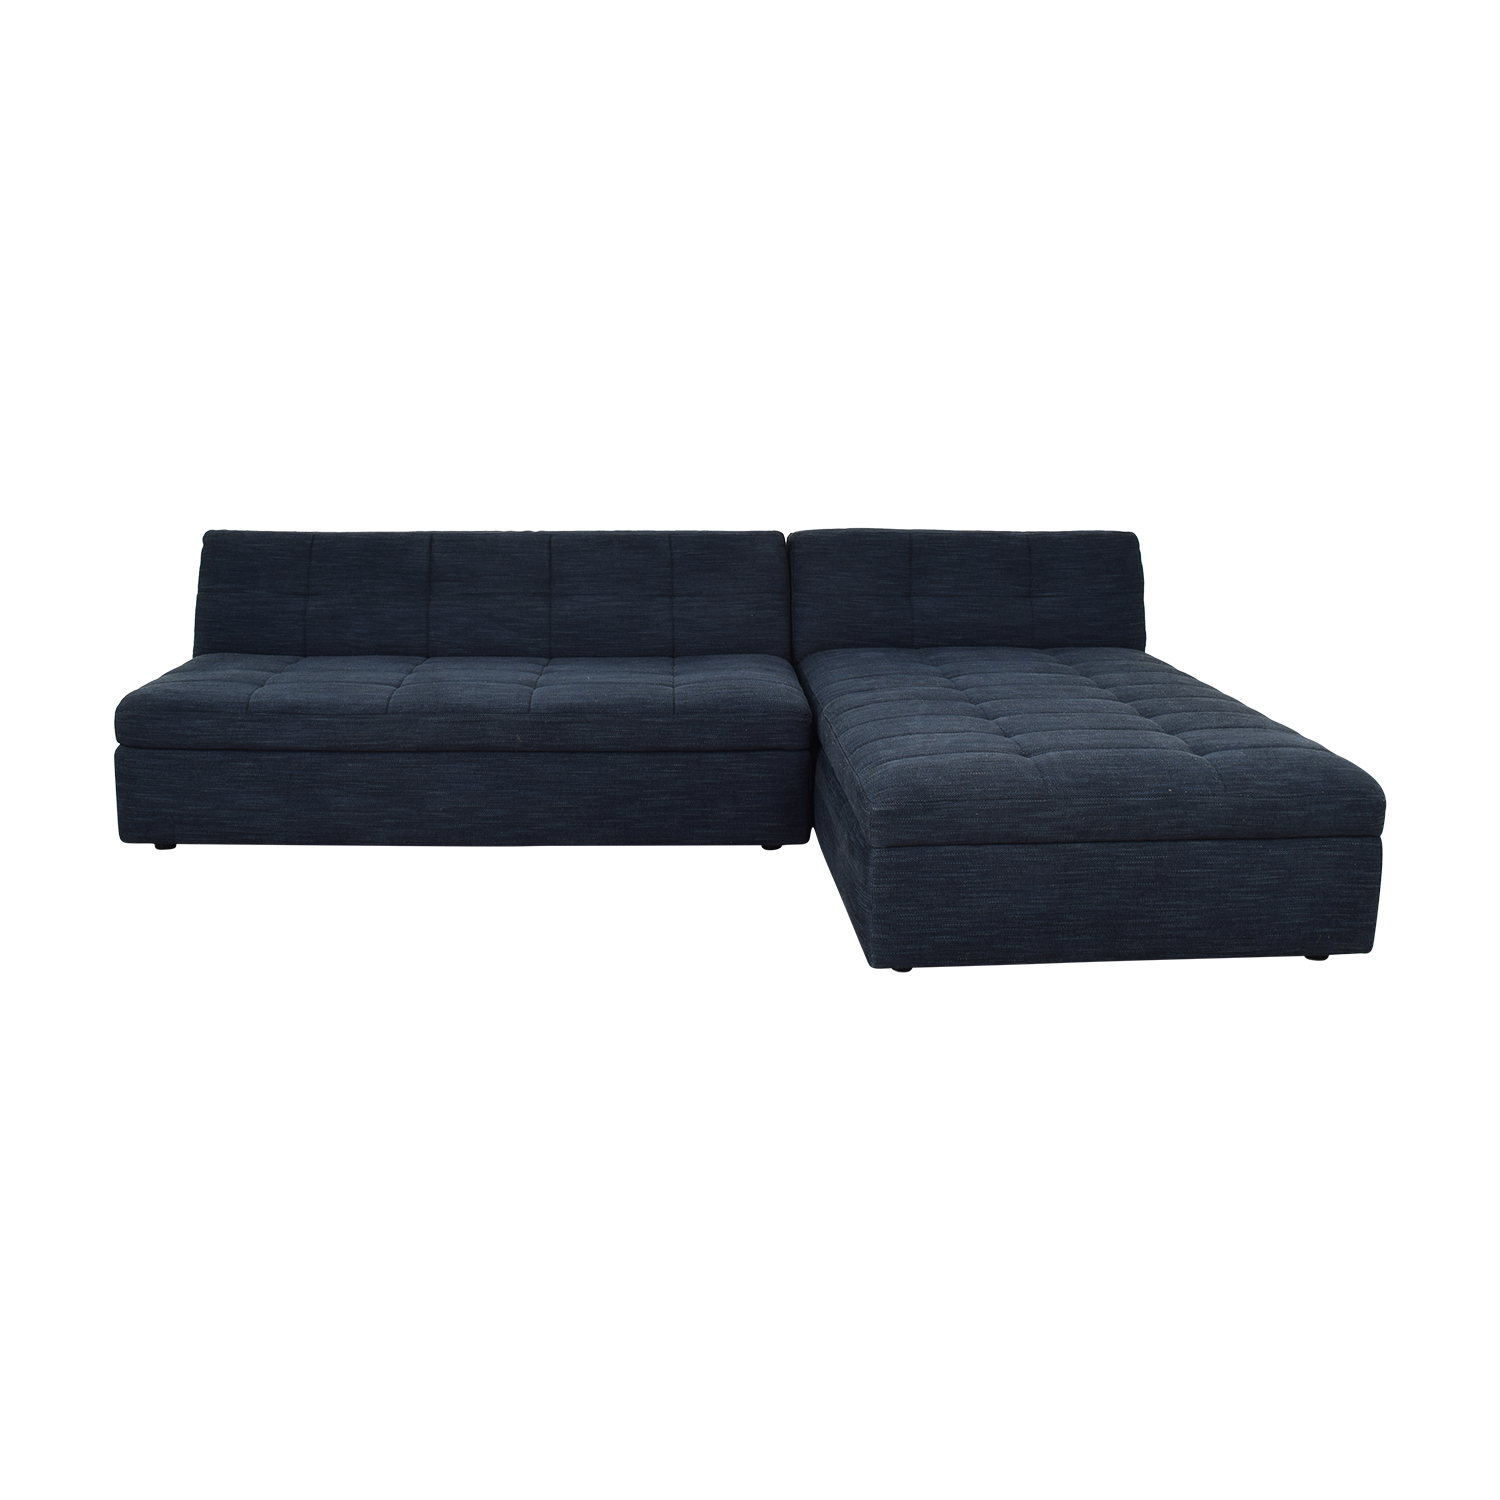 West Elm West Elm Plateau Armless Sofa with Storage Chaise on sale